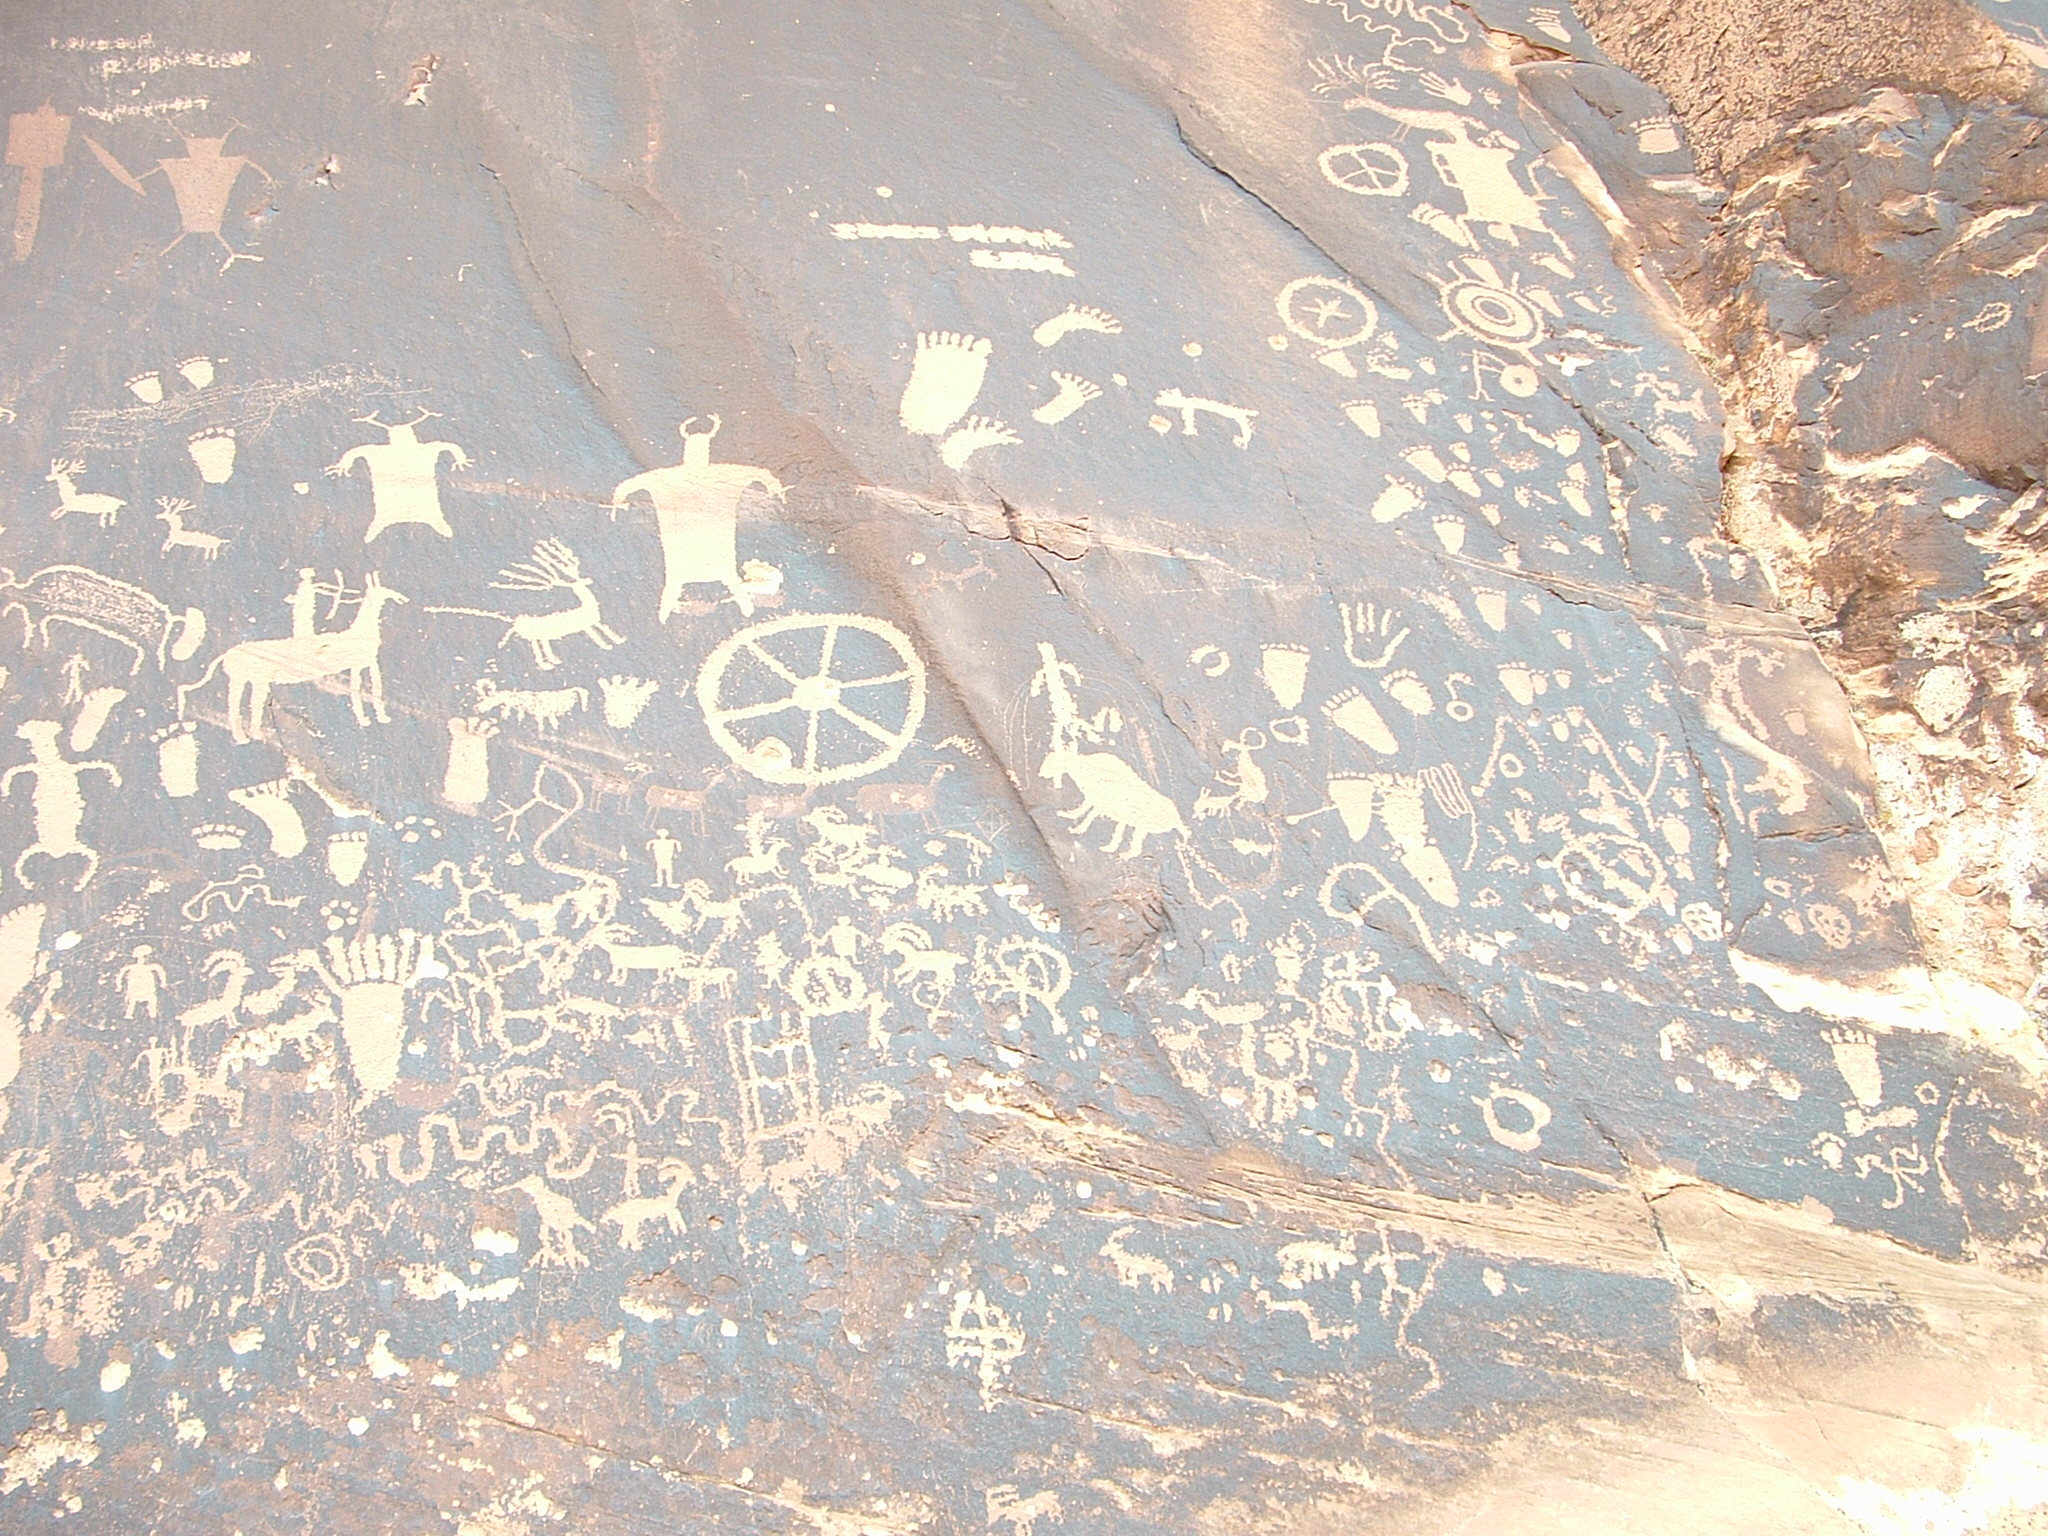 Rock wall with petroglyphs etched into its surface.